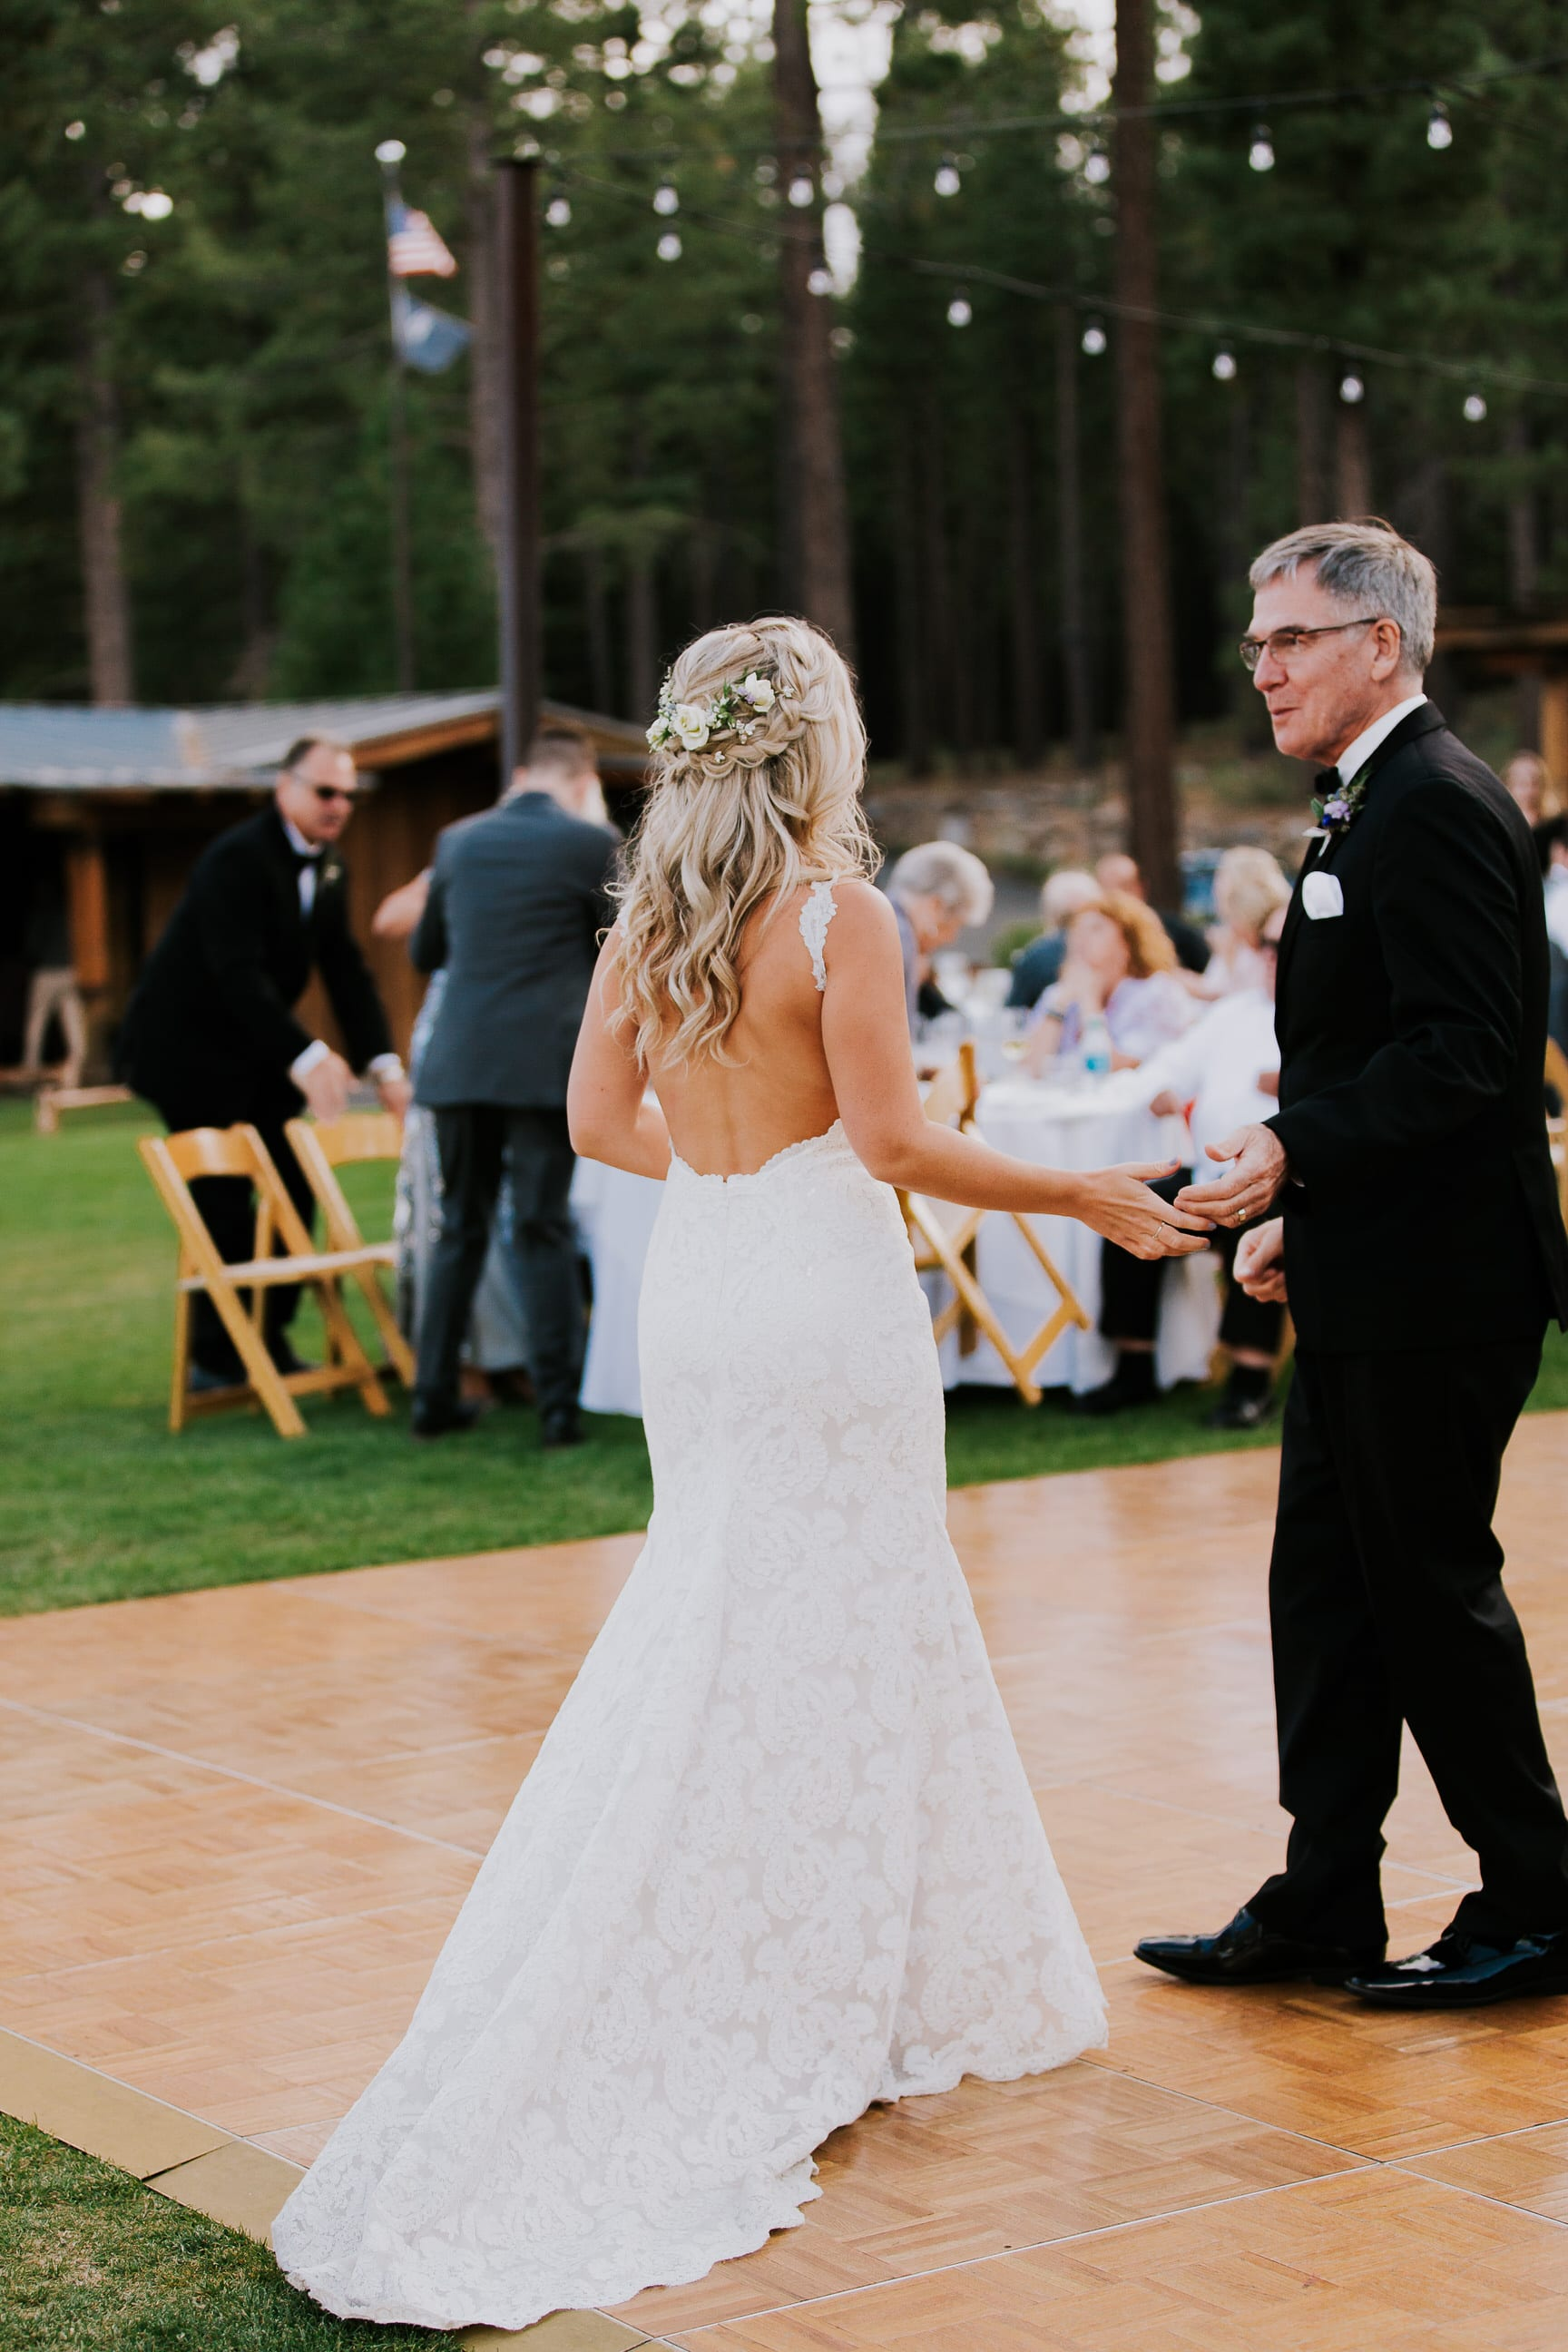 father daughter dance at outdoor wedding reception summer wedding at Gray's Crossing